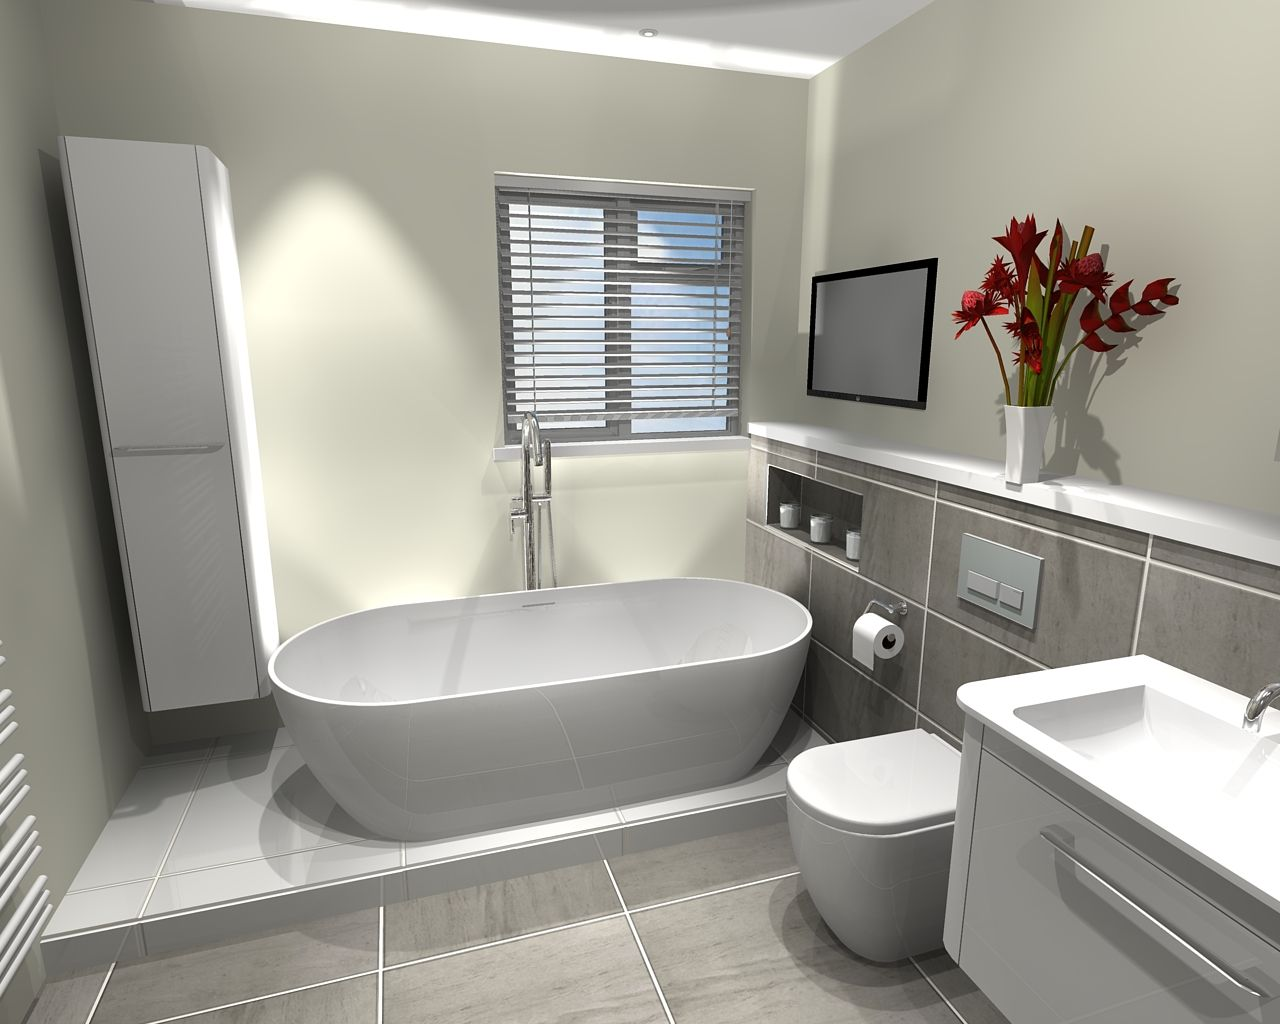 Freestanding Bath & Bauhaus Vanity Unit In Bathroom In Otford New Virtual Bathroom Design Design Inspiration